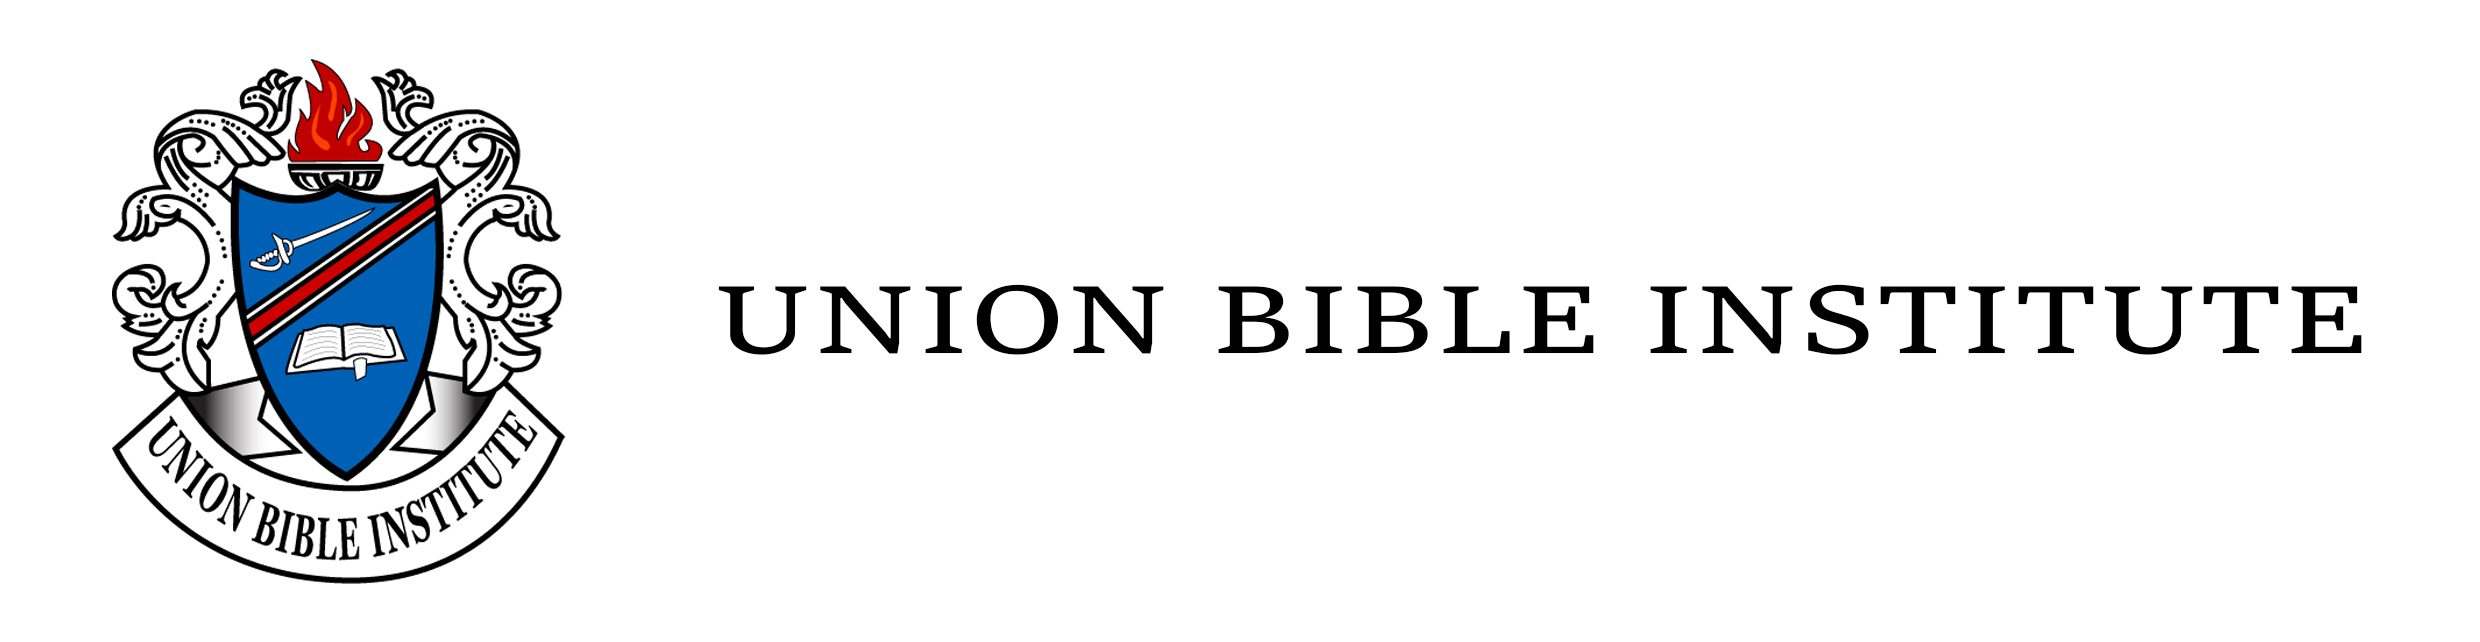 UNION BIBLE INSTITUTE